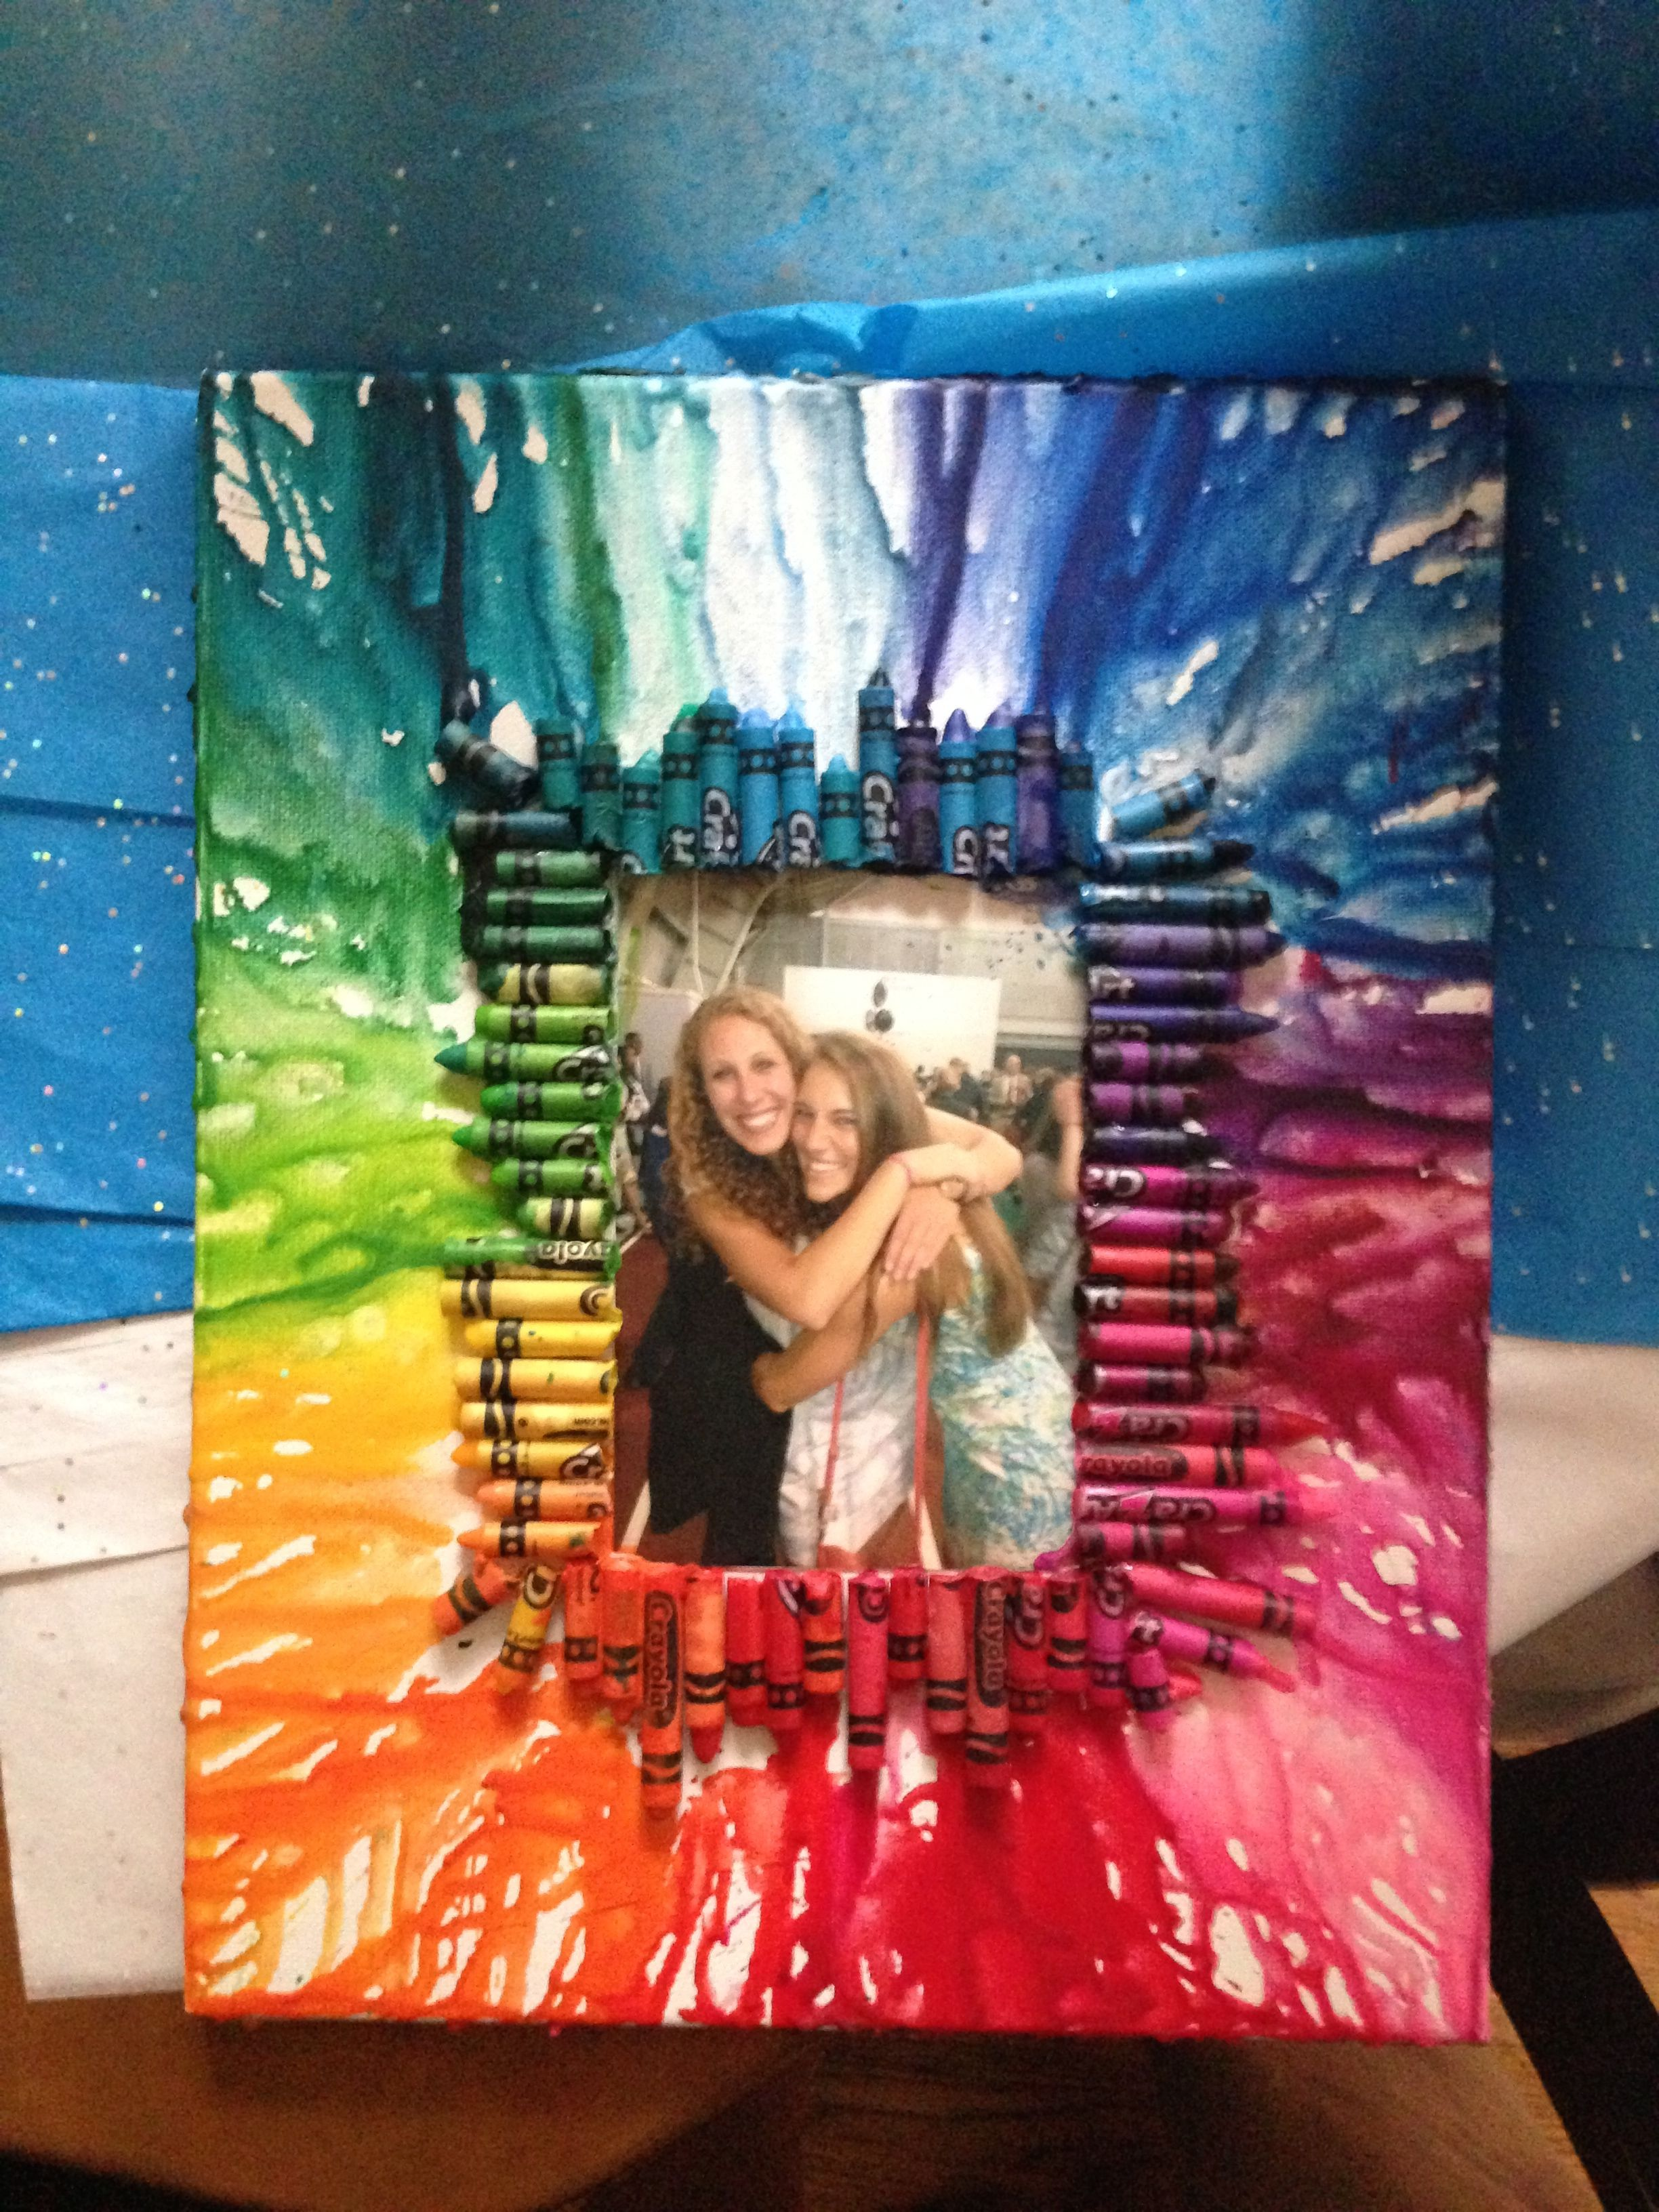 Diy Crayon Drip Frame 1 Buy A Canvas The Size You Want 2